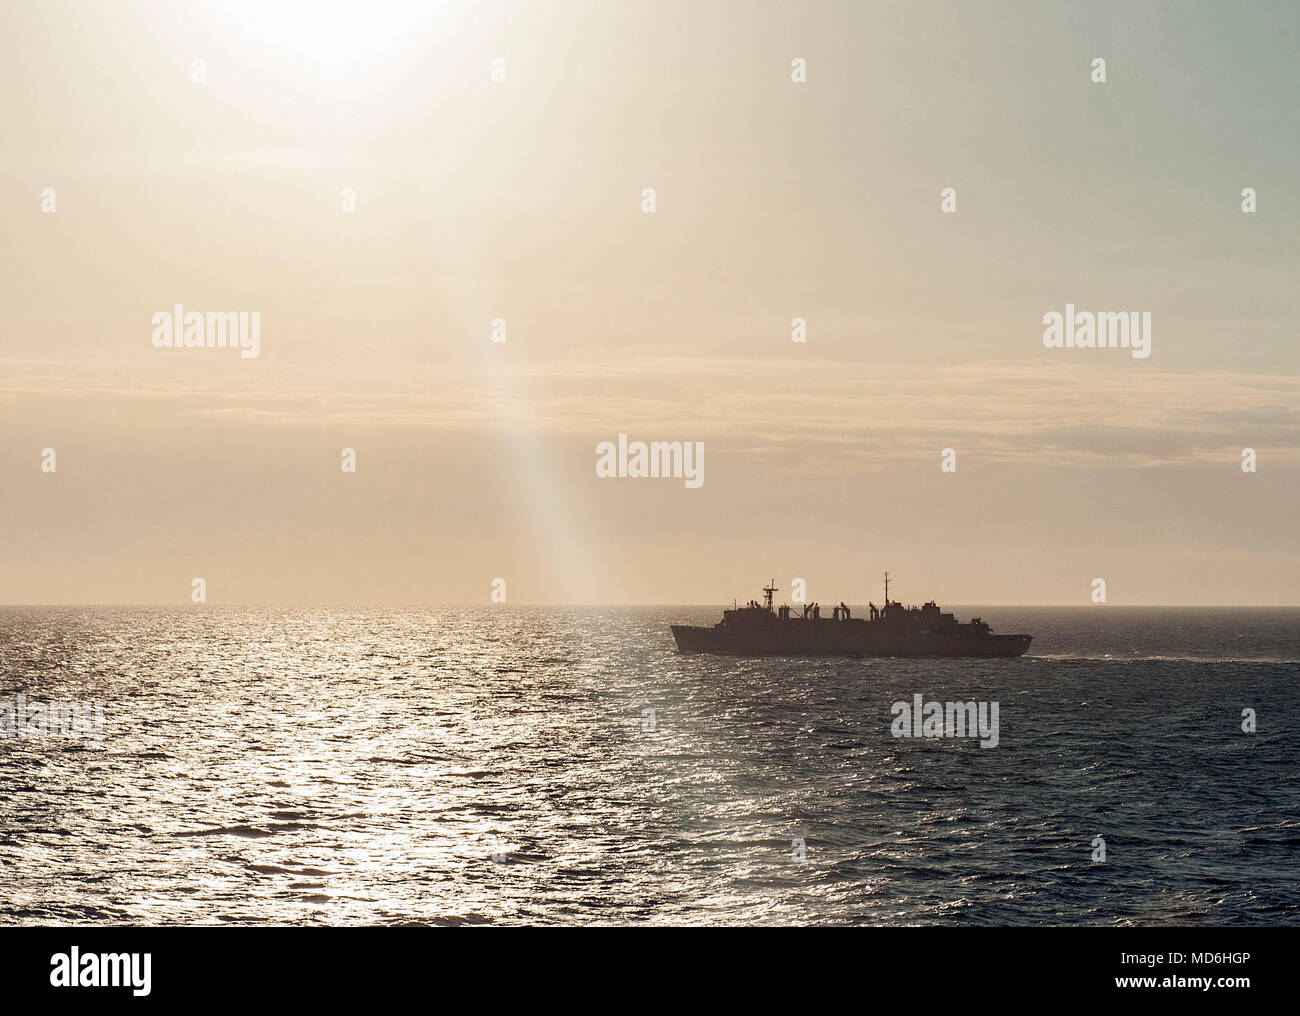 180326-N-JC445-0121 ATLANTIC OCEAN (March 26, 2018) The fast combat support ship USNS Supply (T-AOE 6) sails through the Atlantic Ocean during an ammo offload alongside the aircraft carrier USS George H.W. Bush (CVN 77). Supply is underway in support of the ammo offload. (U.S. Navy photo by Mass Communication Specialist 3rd Class Mario Coto) - Stock Image